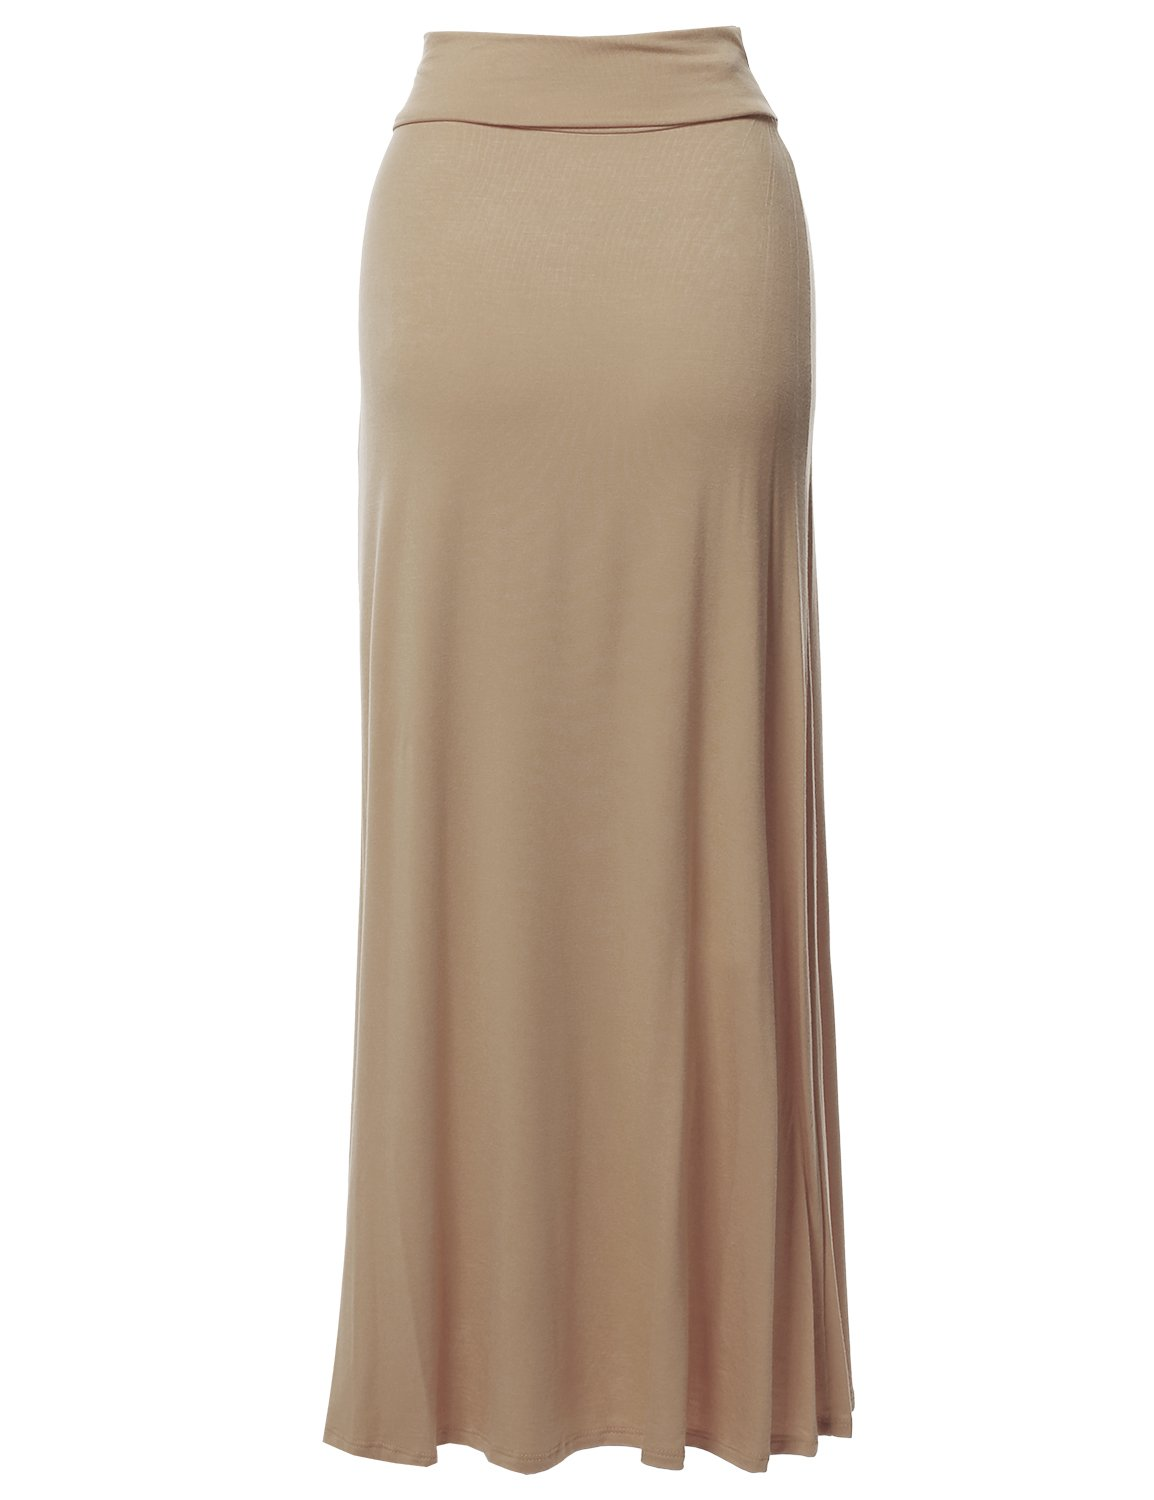 Stylish Fold Over Flare Long Maxi Skirt - Made in USA Beige M by Made by Emma (Image #2)